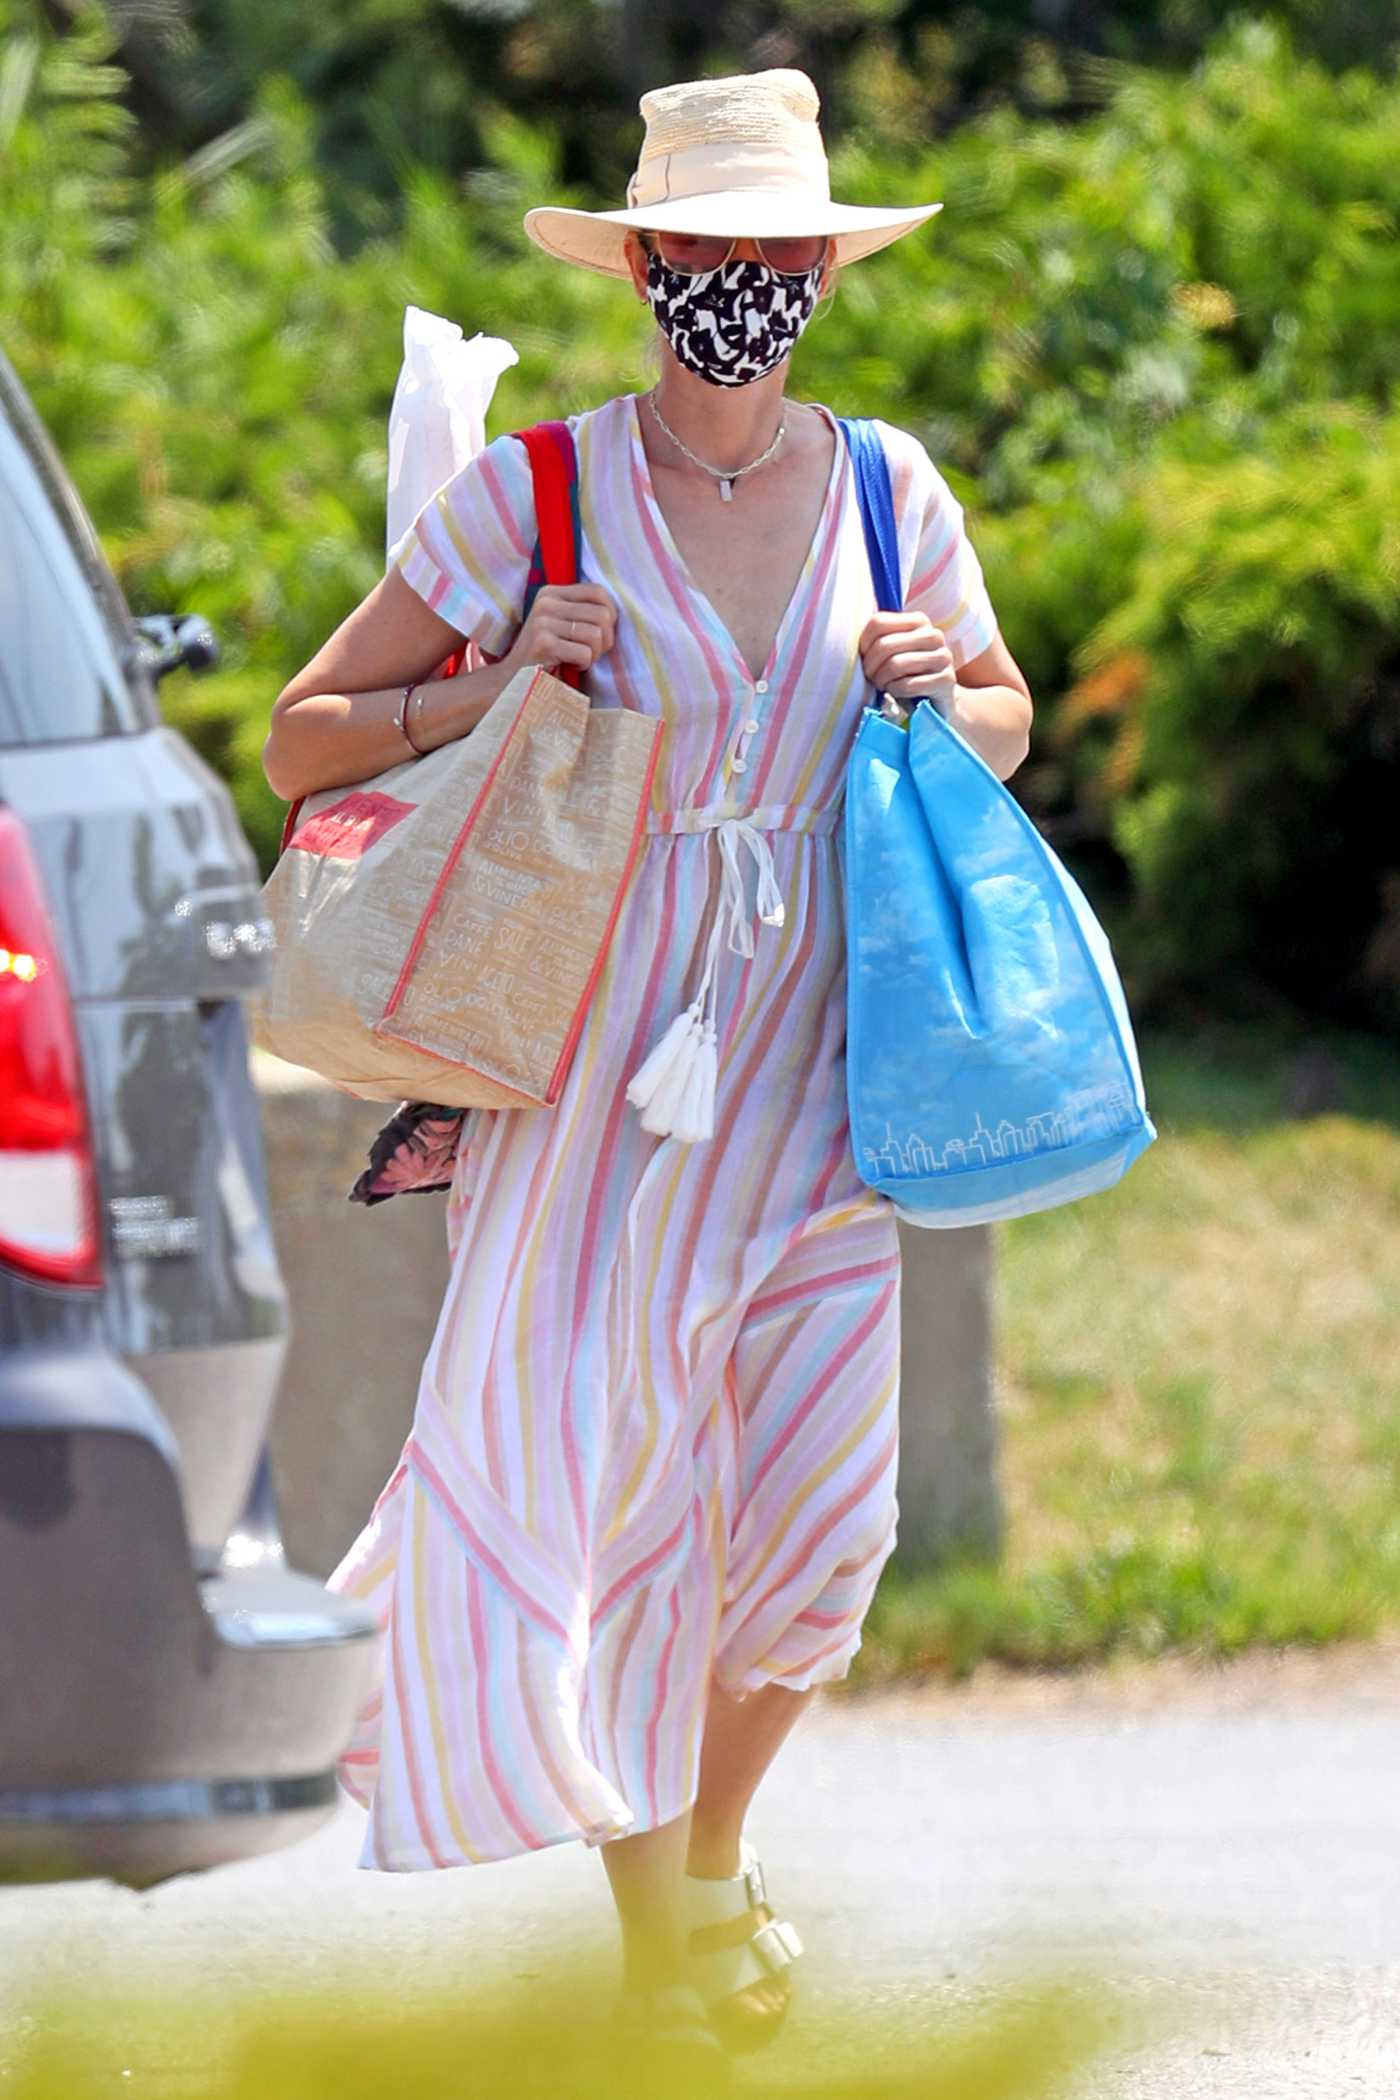 Naomi Watts in a Protective Mask Goes Shopping in the Hamptons, New York 07/15/2020